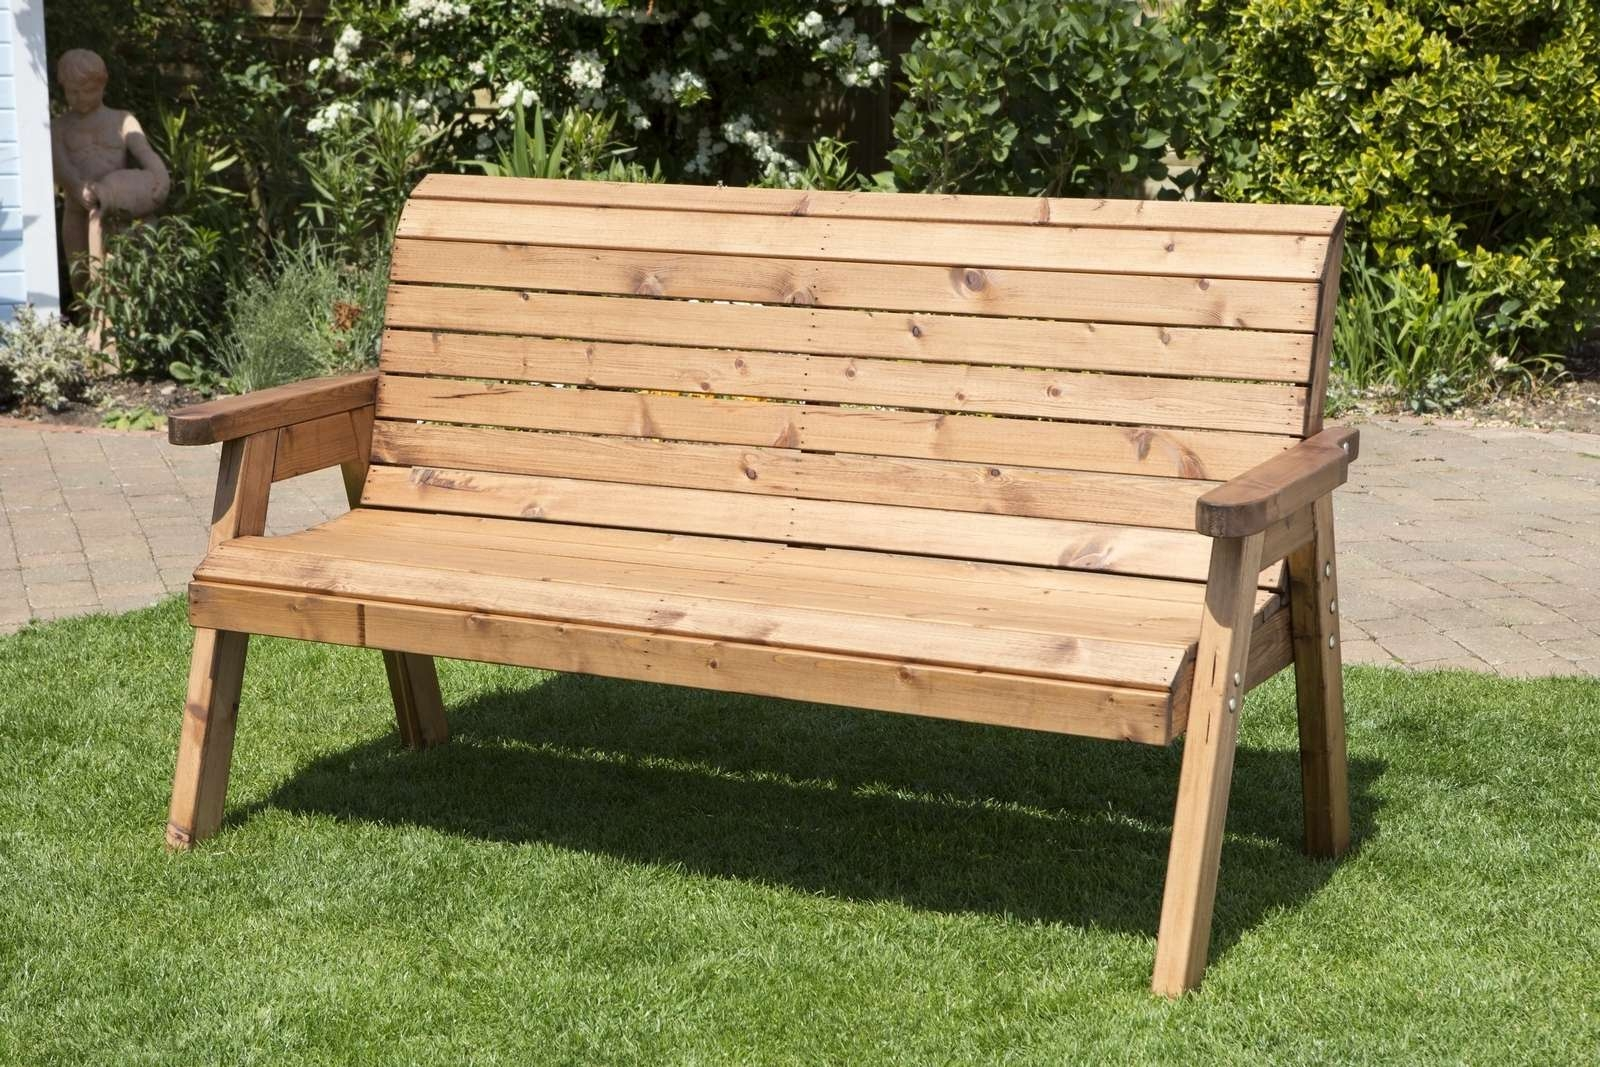 Uk Made Fully Assembled Heavy Duty Wooden Garden Companion Seat In Well Known Wooden Garden Coffee Tables (Gallery 18 of 20)